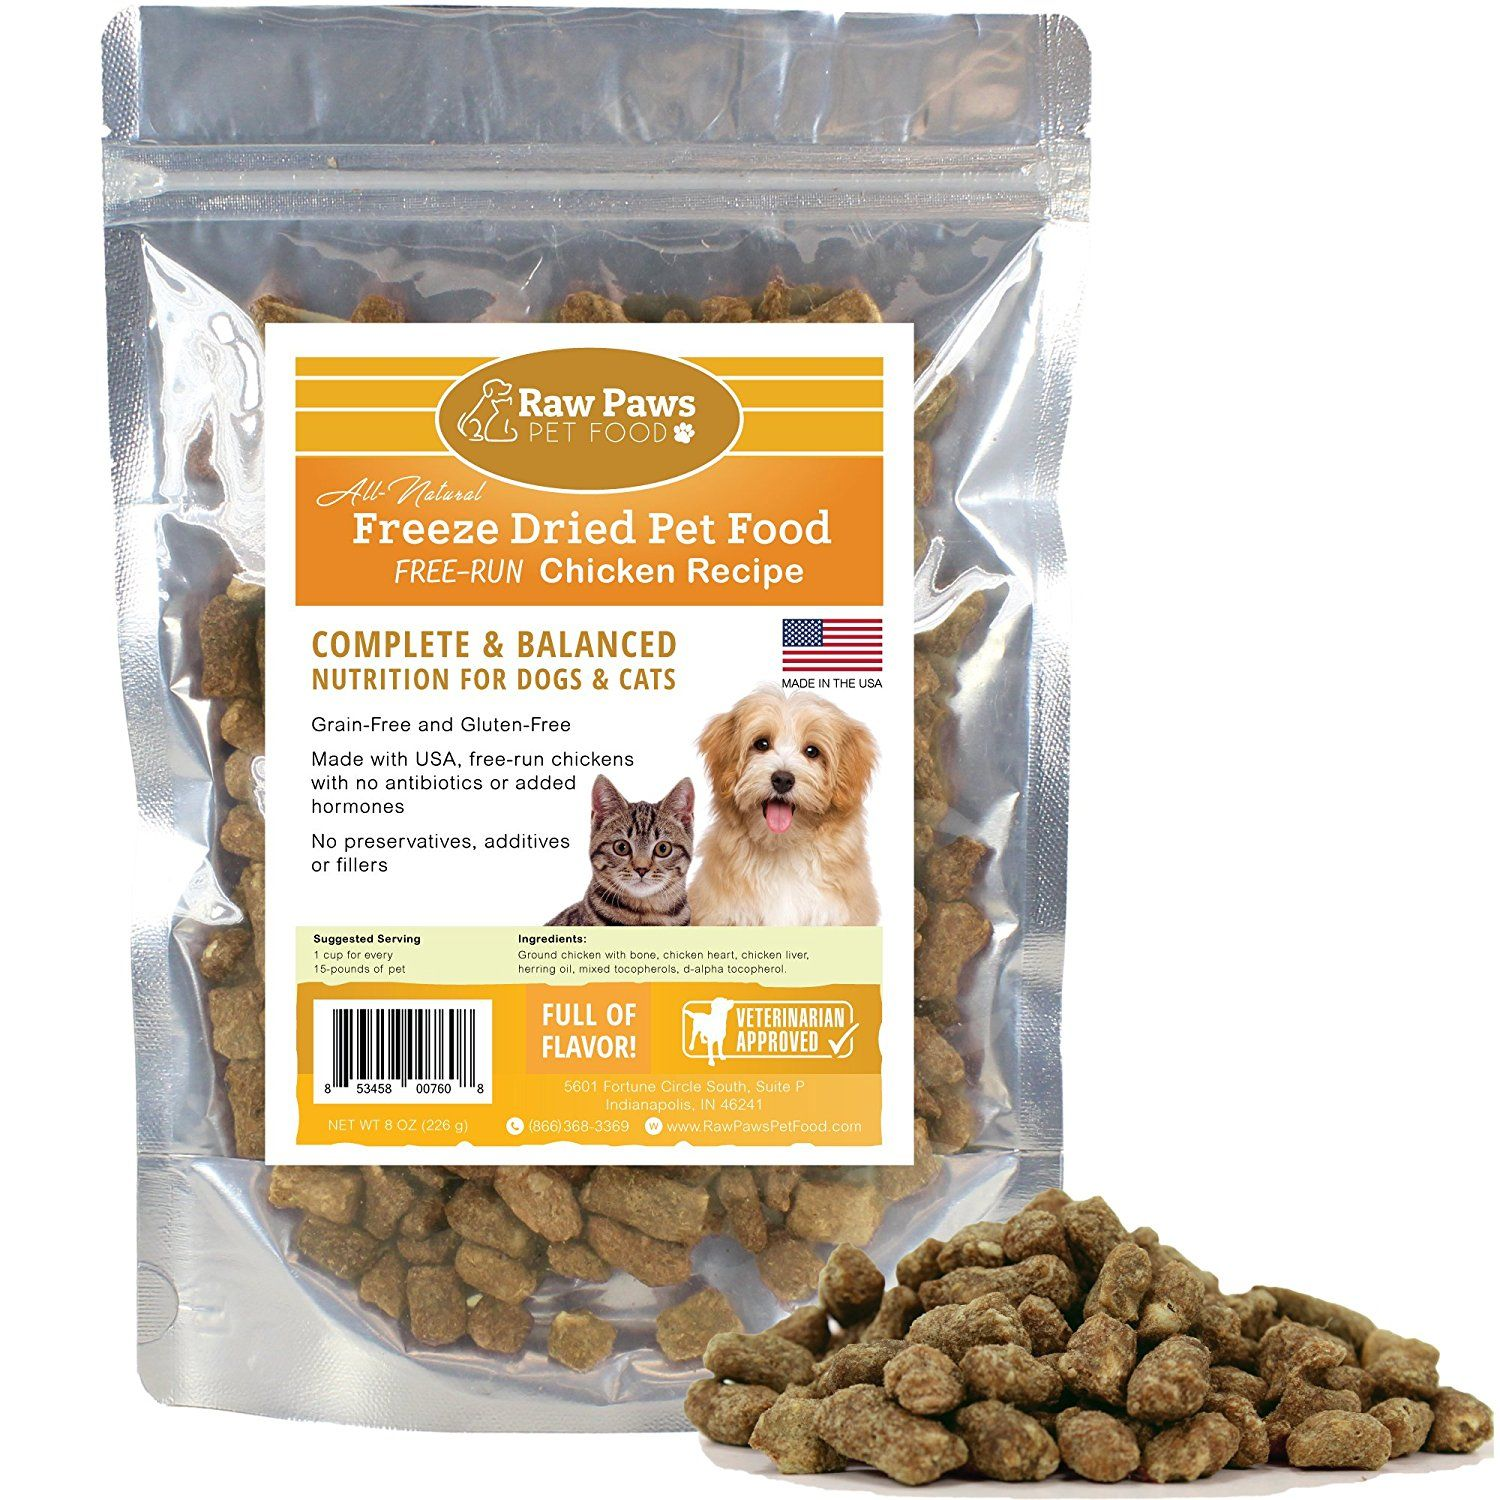 Raw paws pet premium freeze dried pet food for dogs and cats raw paws pet premium freeze dried pet food for dogs and cats antibiotic free chicken made in the usa grain free diet continue to the product at the forumfinder Gallery